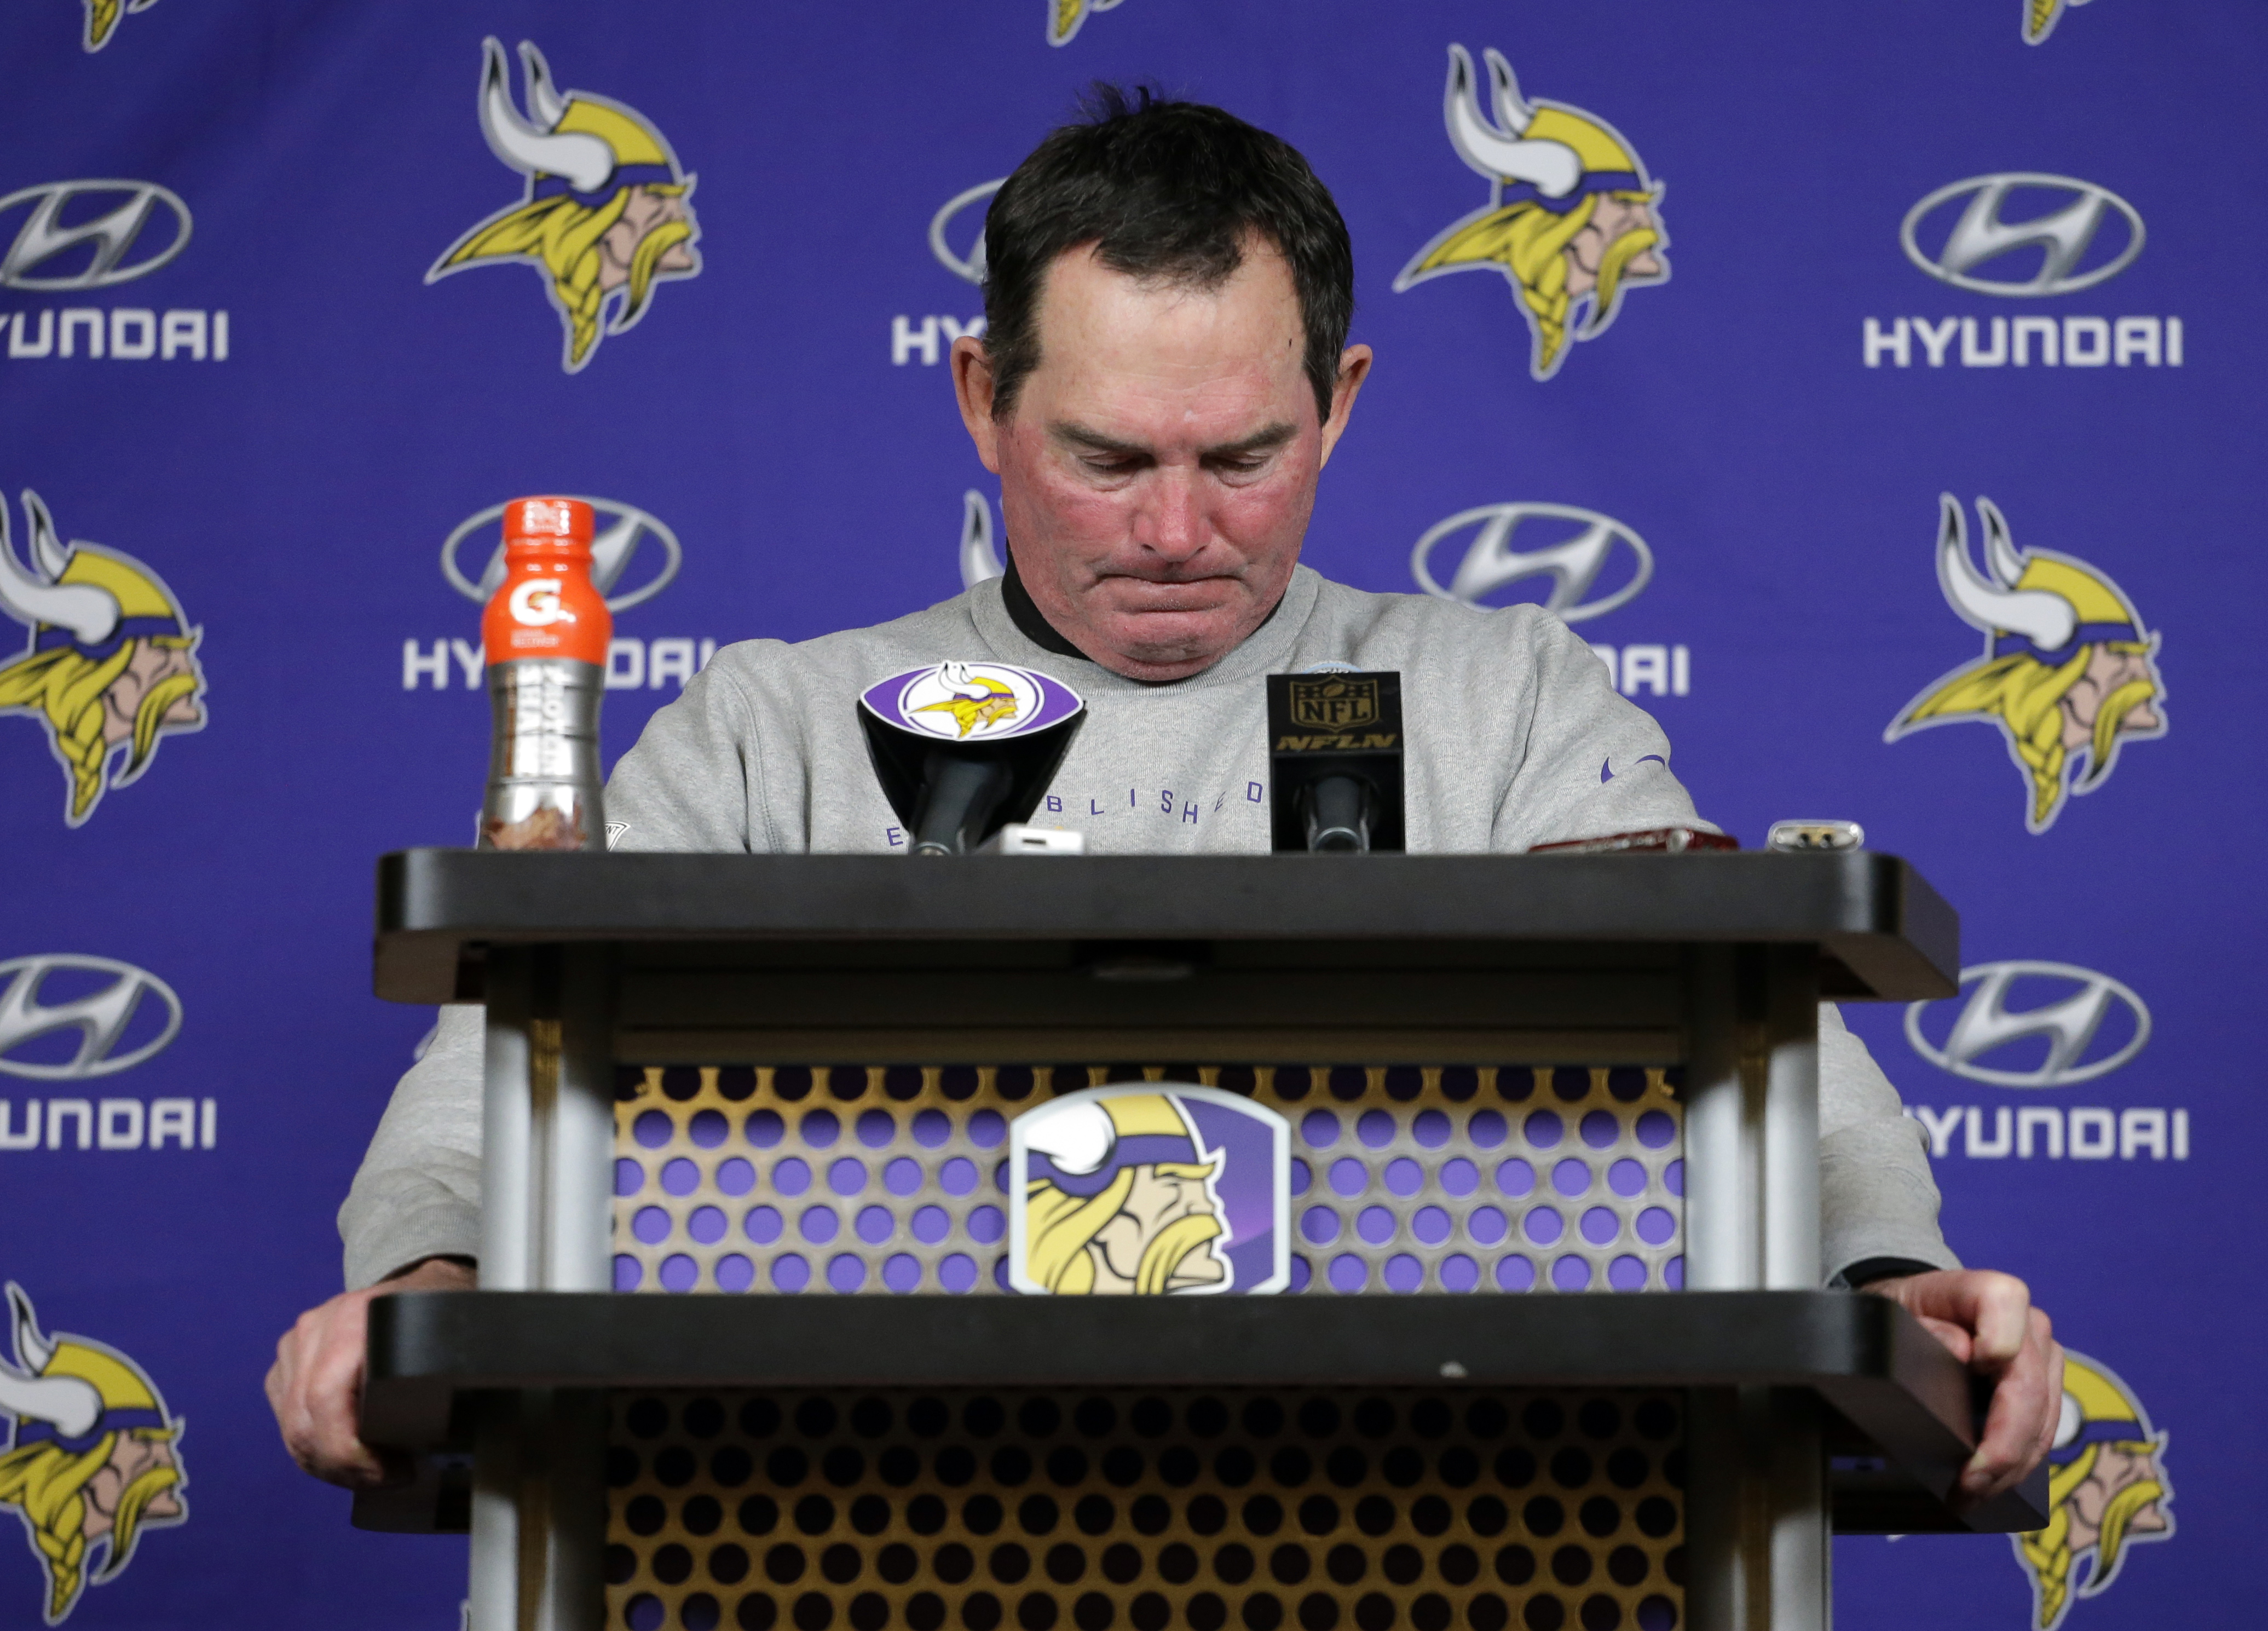 Minnesota Vikings head coach Mike Zimmer pauses during a post game news conference after an NFL wild-card football game against the Seattle Seahawks, Sunday, Jan. 10, 2016, in Minneapolis. The Seahawks won 10-9. (AP Photo/Nam Y. Huh)